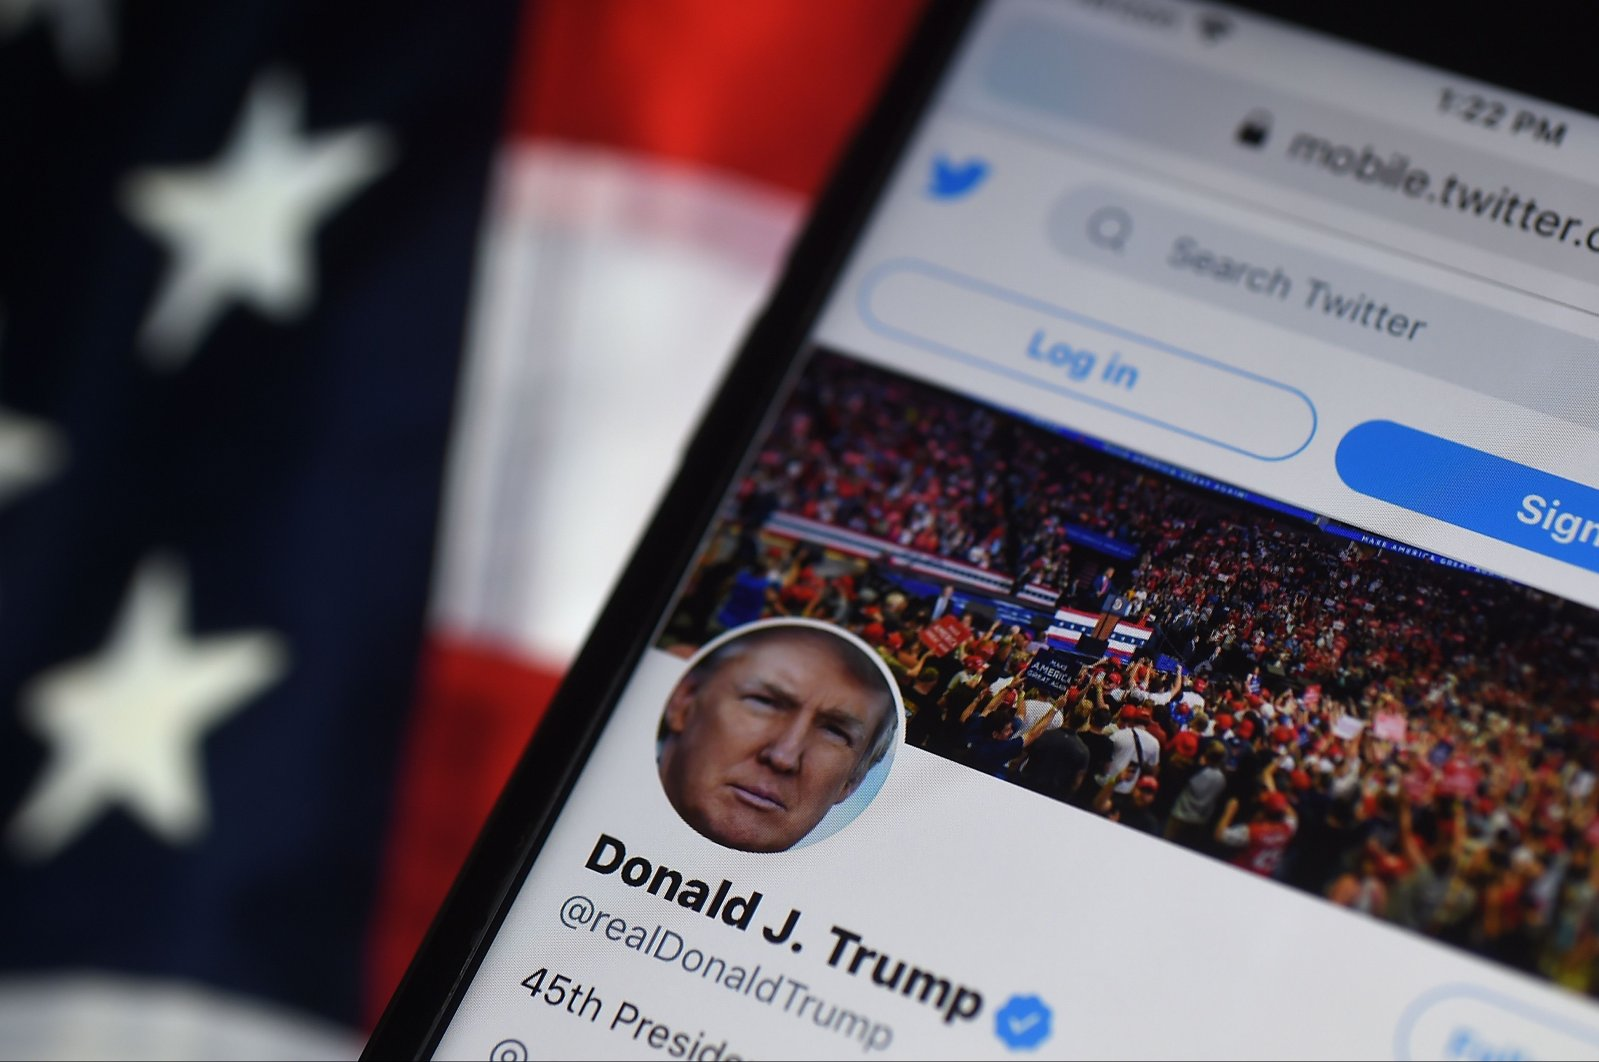 In this photo illustration, the Twitter account of U.S. President Donald Trump is displayed on a mobile phone on Aug.10, 2020, in Arlington, Virginia. (AFP)